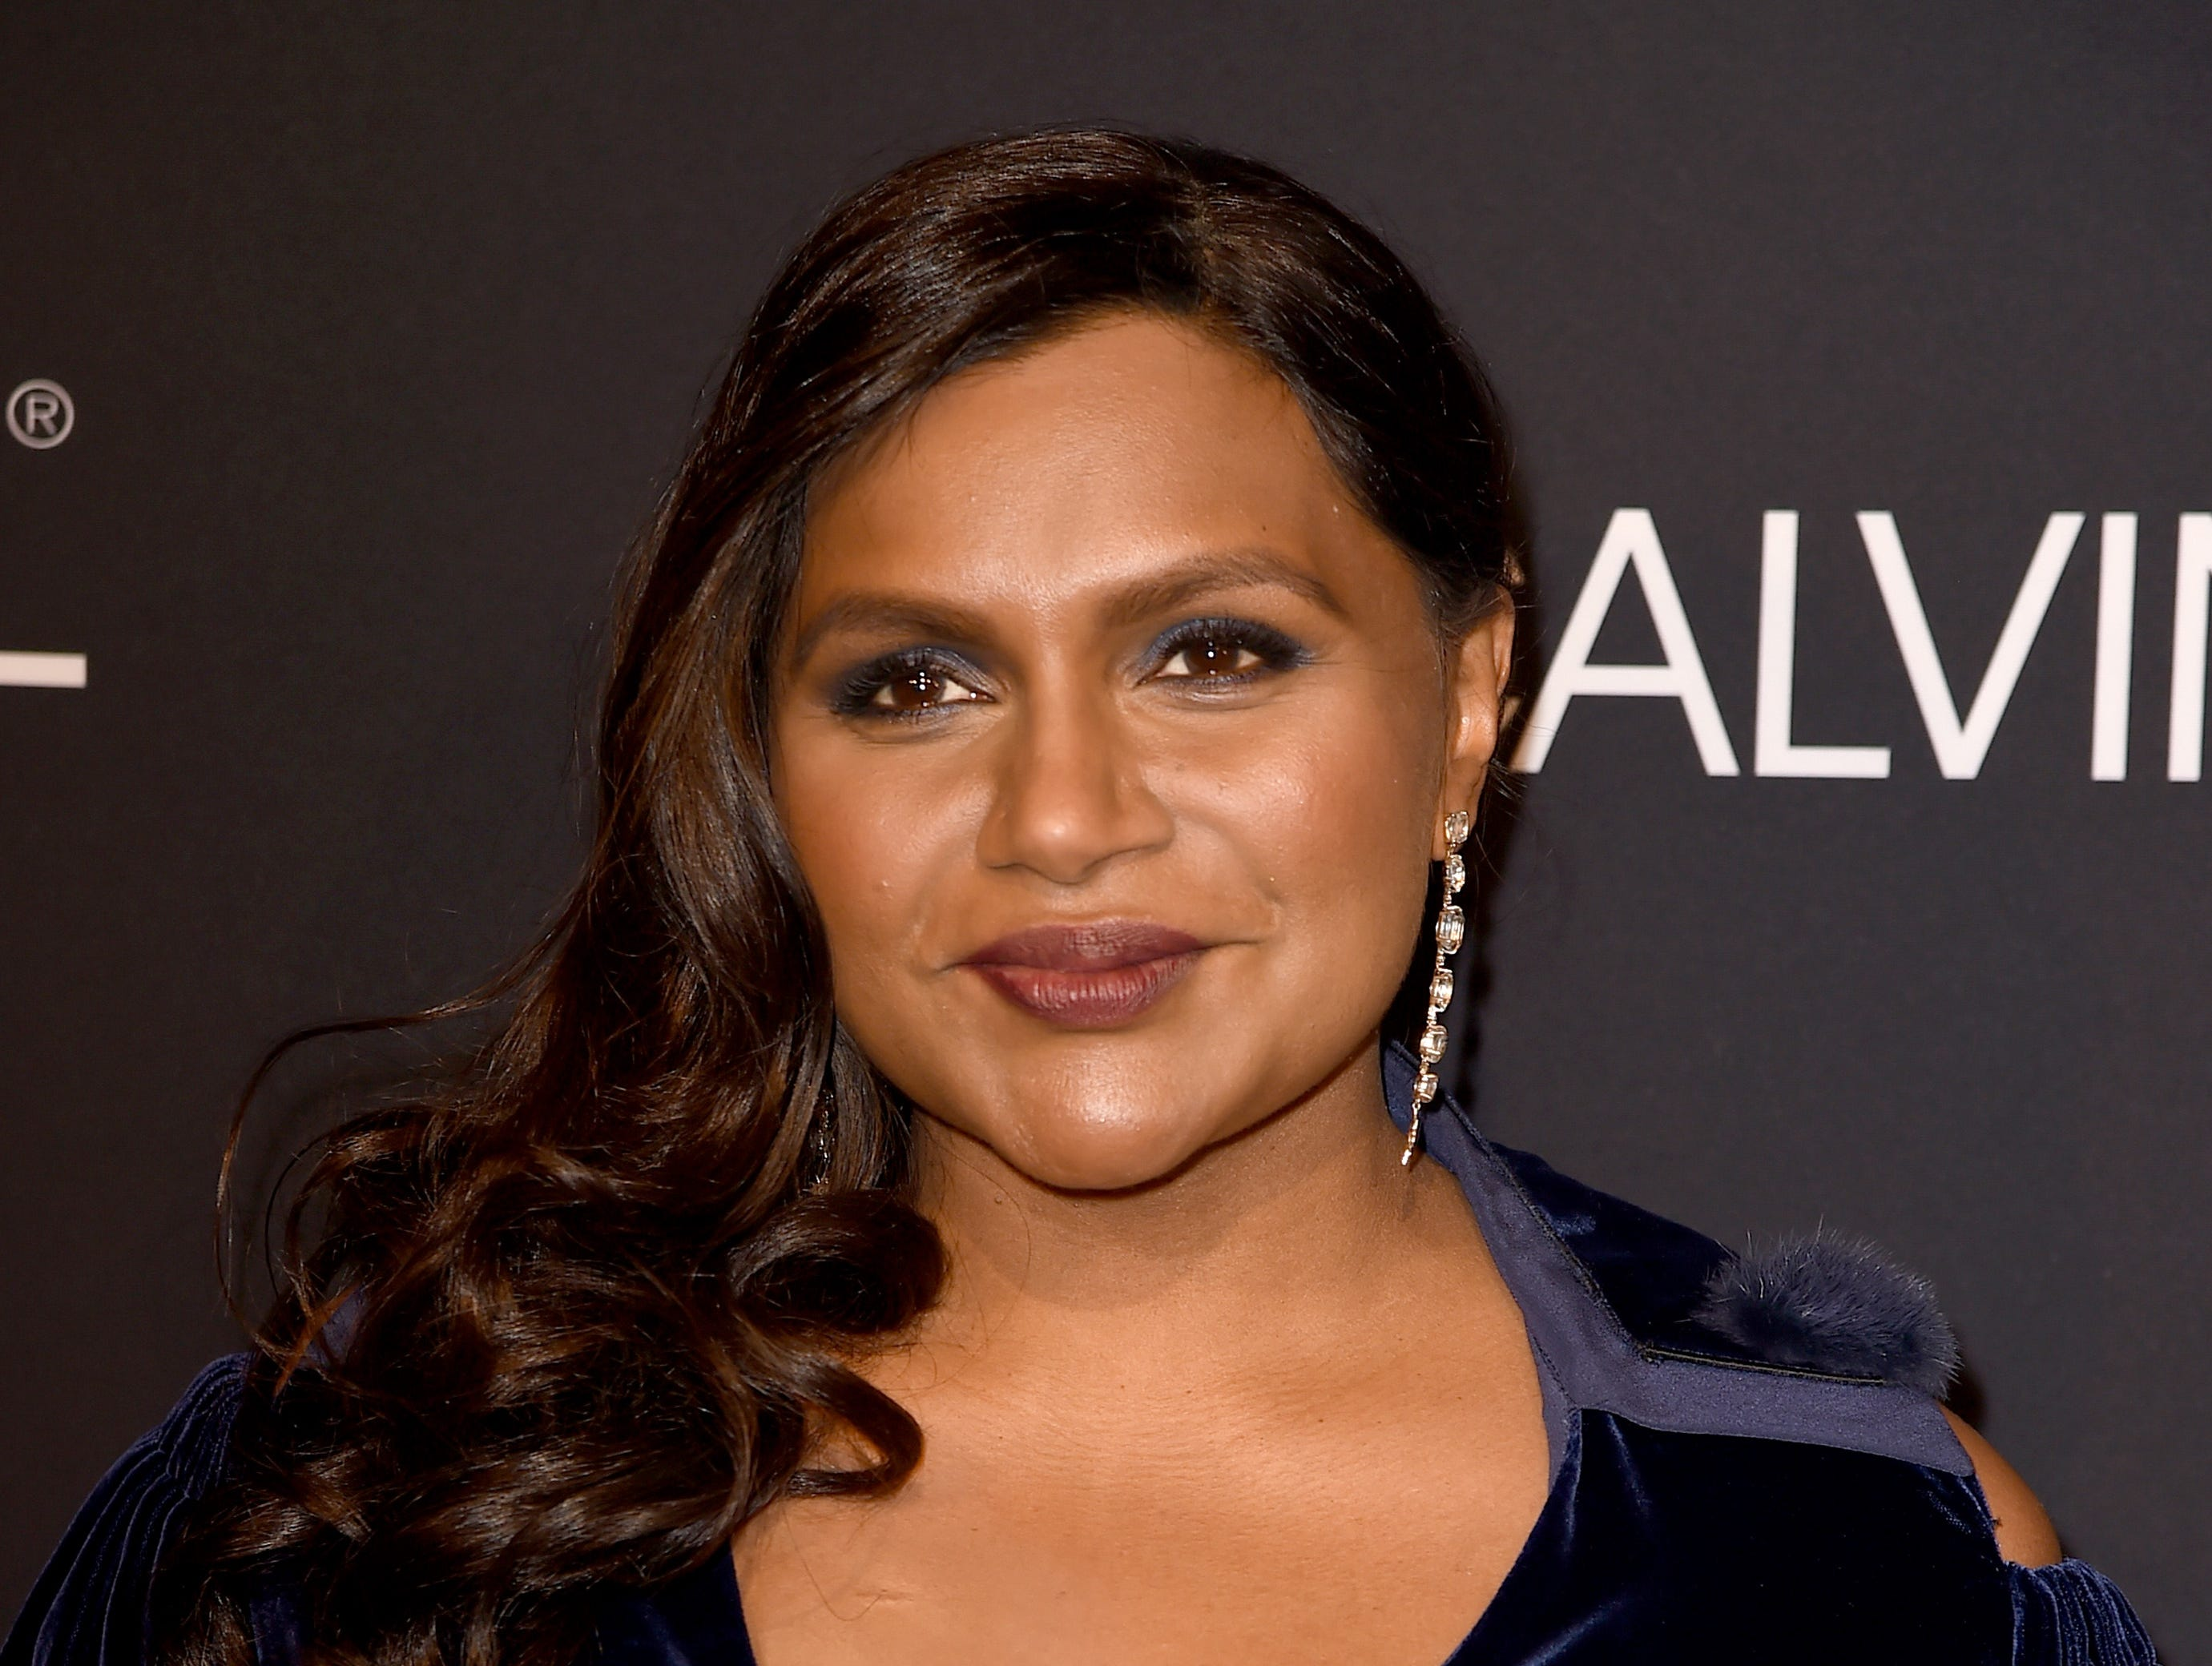 LOS ANGELES, CA - OCTOBER 15:  Mindy Kaling attends the 25th Annual ELLE Women in Hollywood Celebration at Four Seasons Hotel Los Angeles at Beverly Hills on October 15, 2018 in Los Angeles, California.  (Photo by Kevin Winter/Getty Images) ORG XMIT: 775239957 ORIG FILE ID: 1052225224